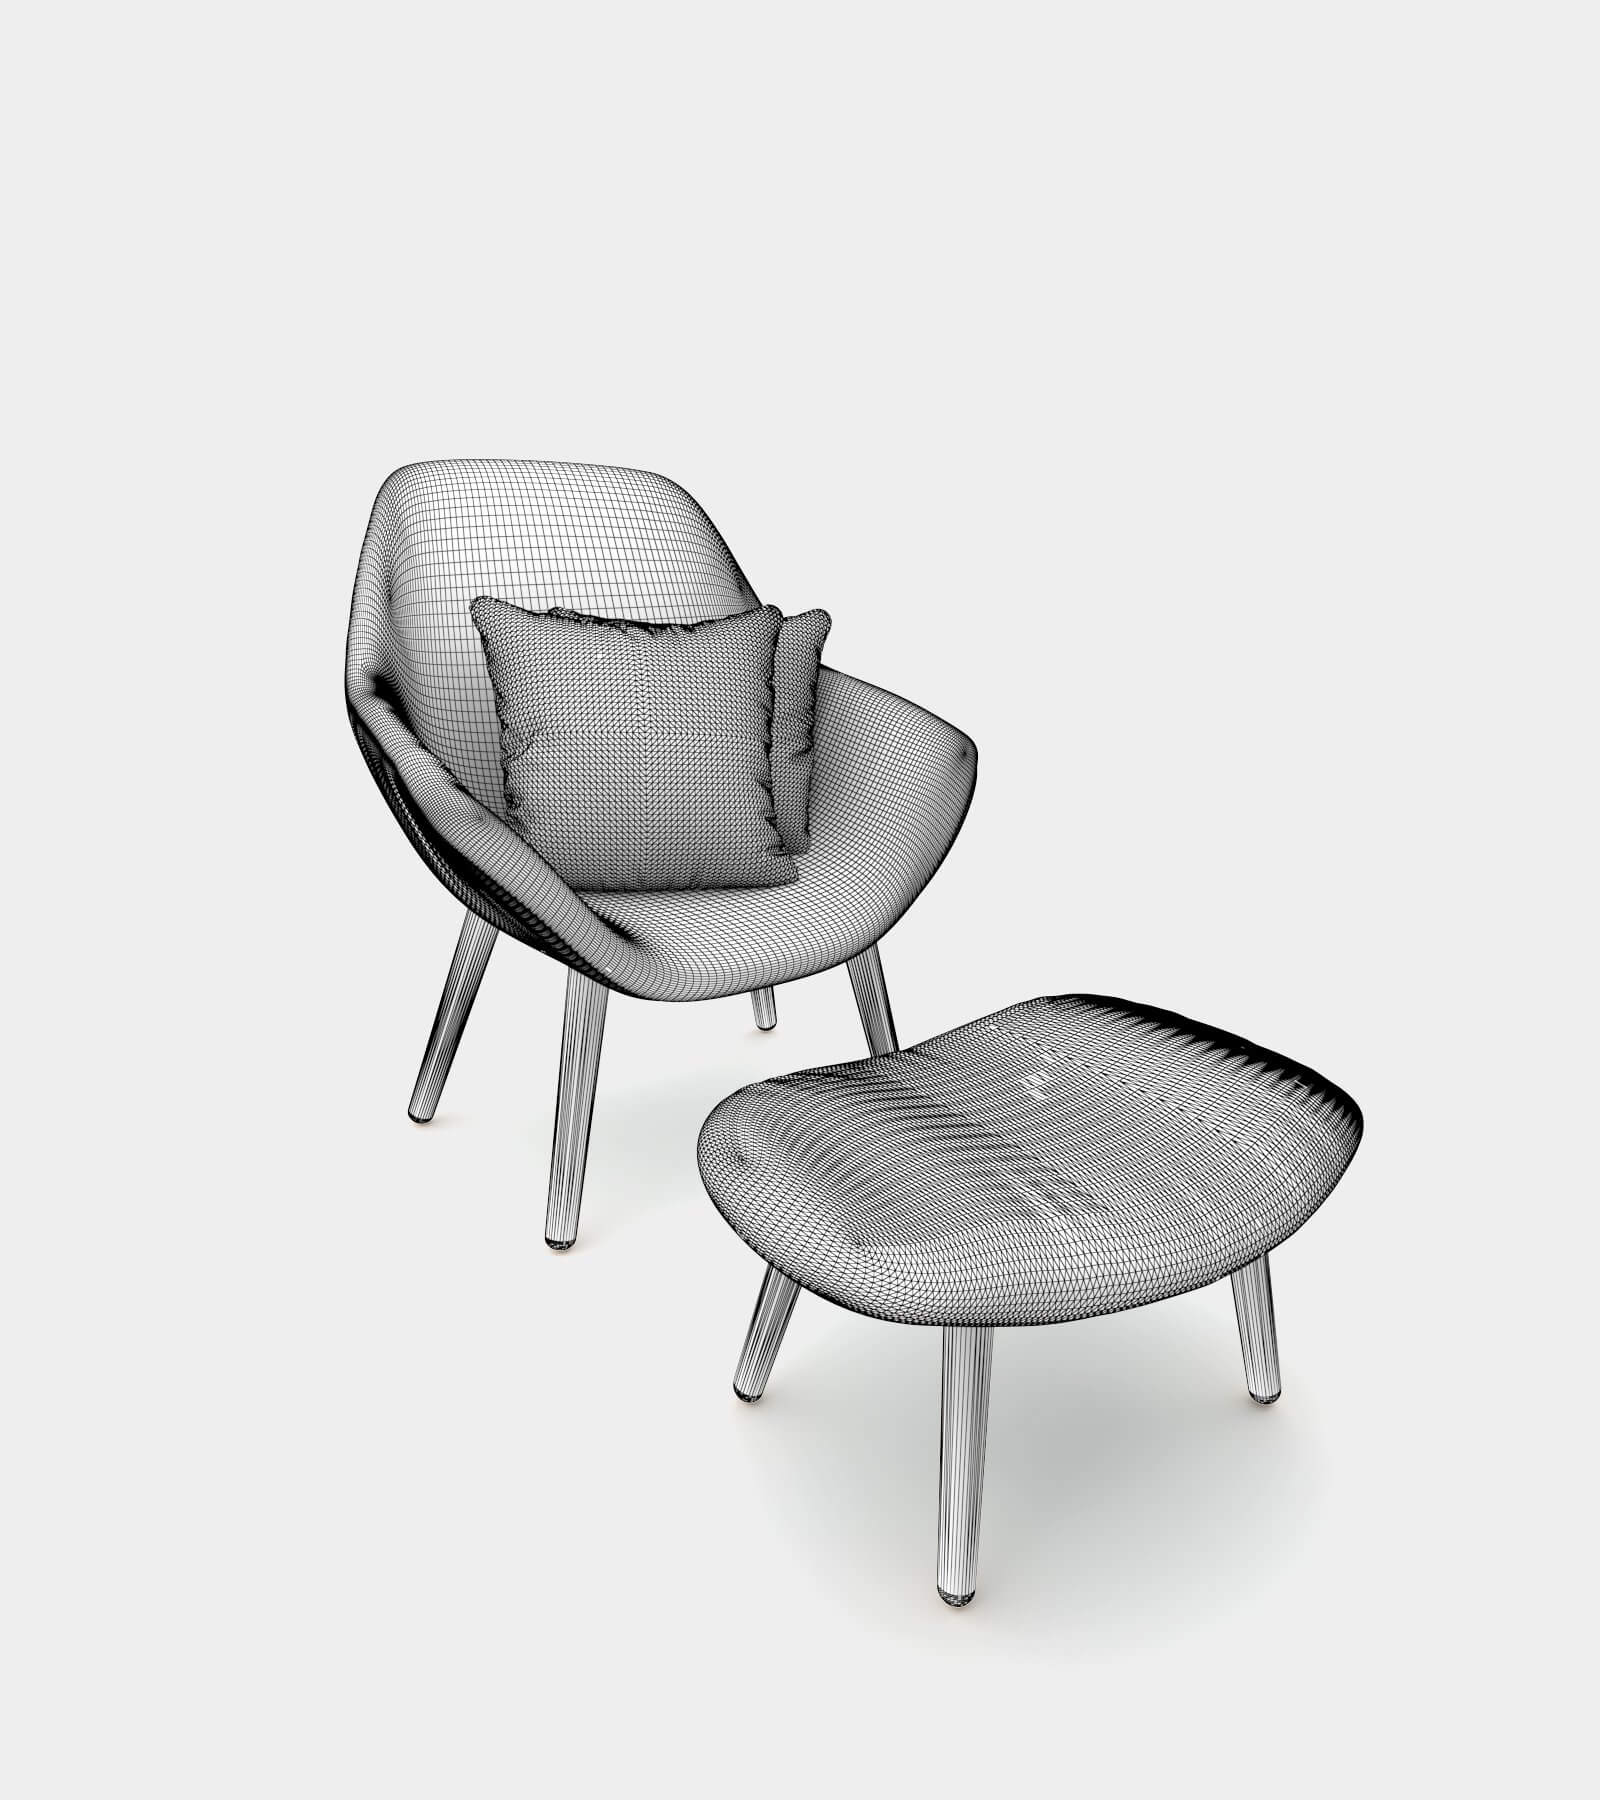 Seater with ottoman and cushion with pattern-wire 3D Model